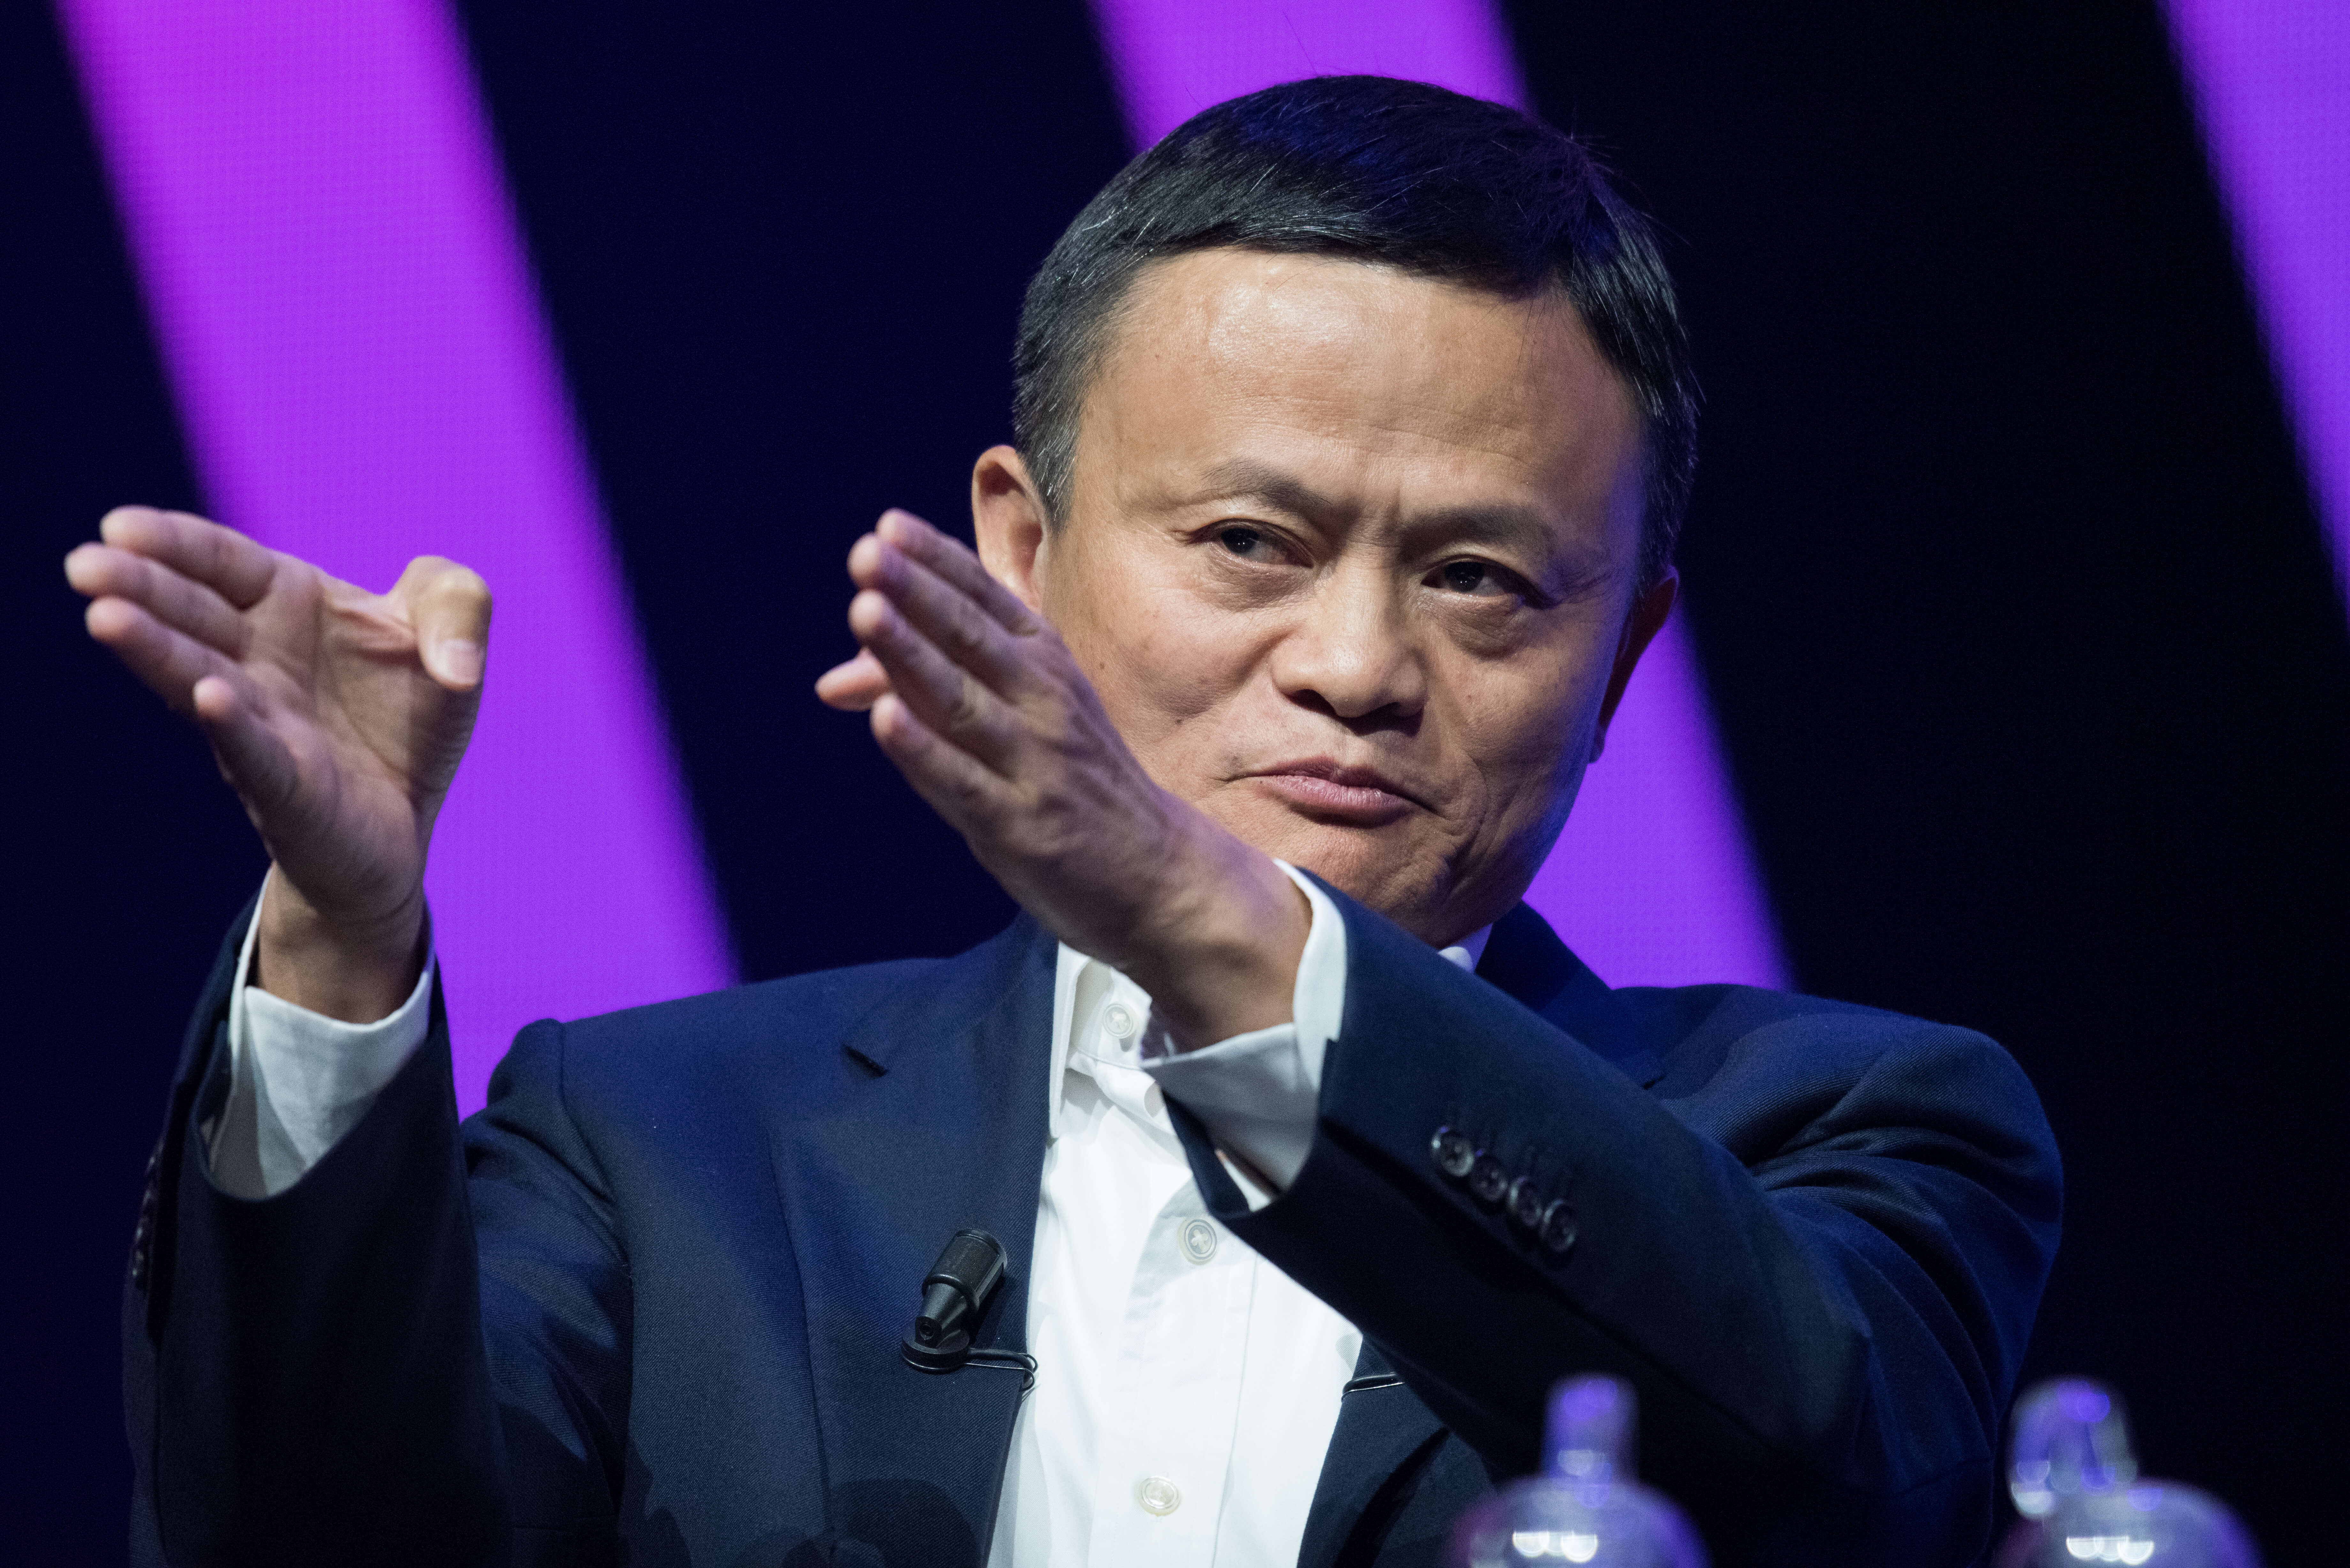 Jack Ma, co-founder of Alibaba, believes that oneness is the only way to beat the COVID-19 pandemic. Source: Shutterstock.